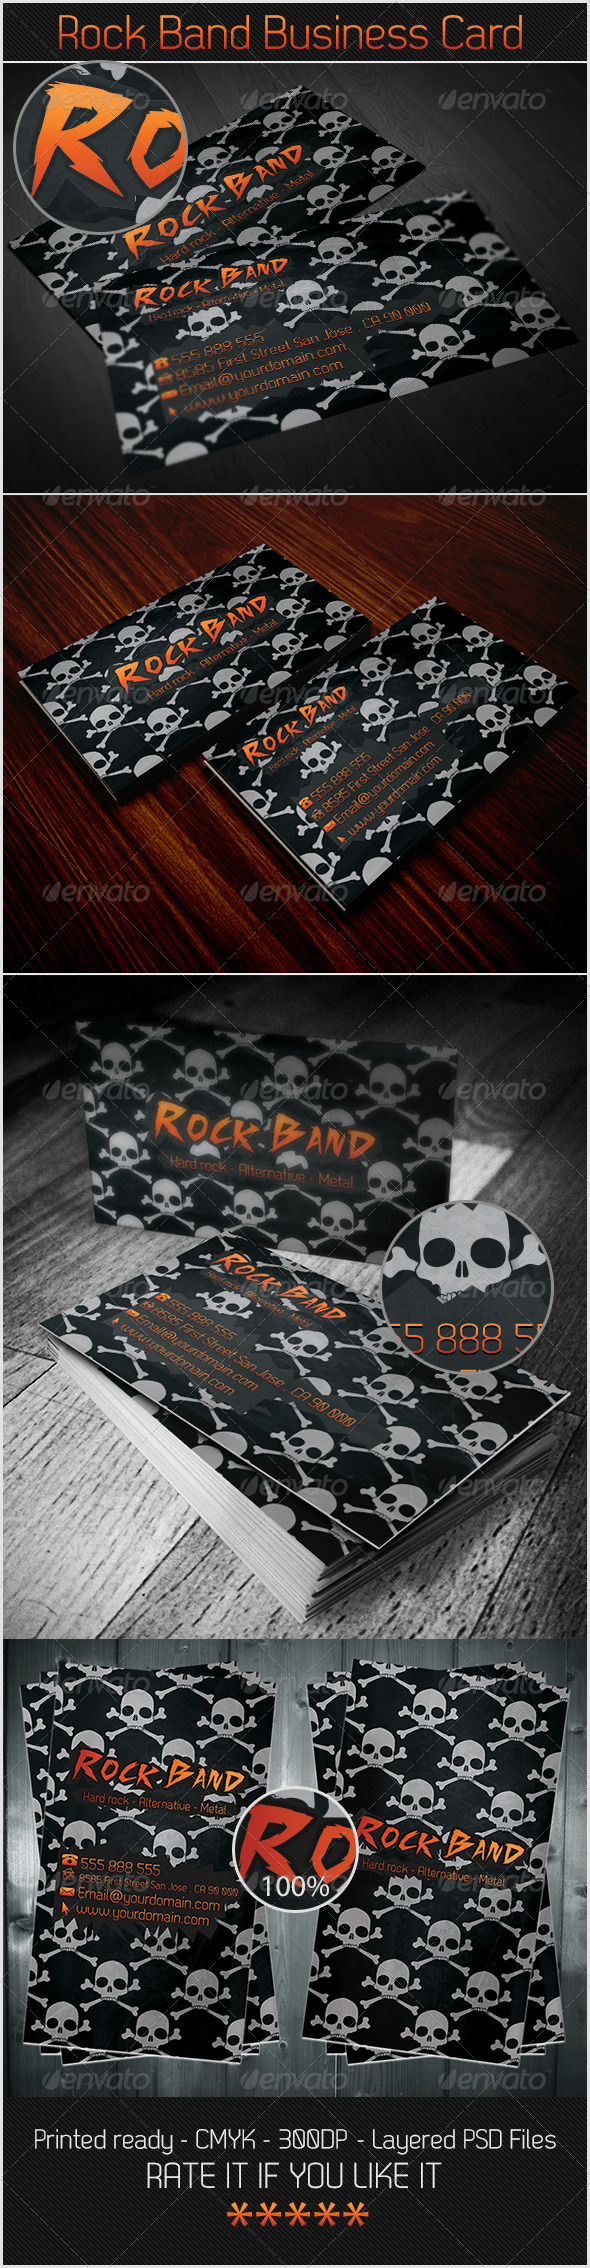 GraphicRiver Rock Band Business Card 3371003